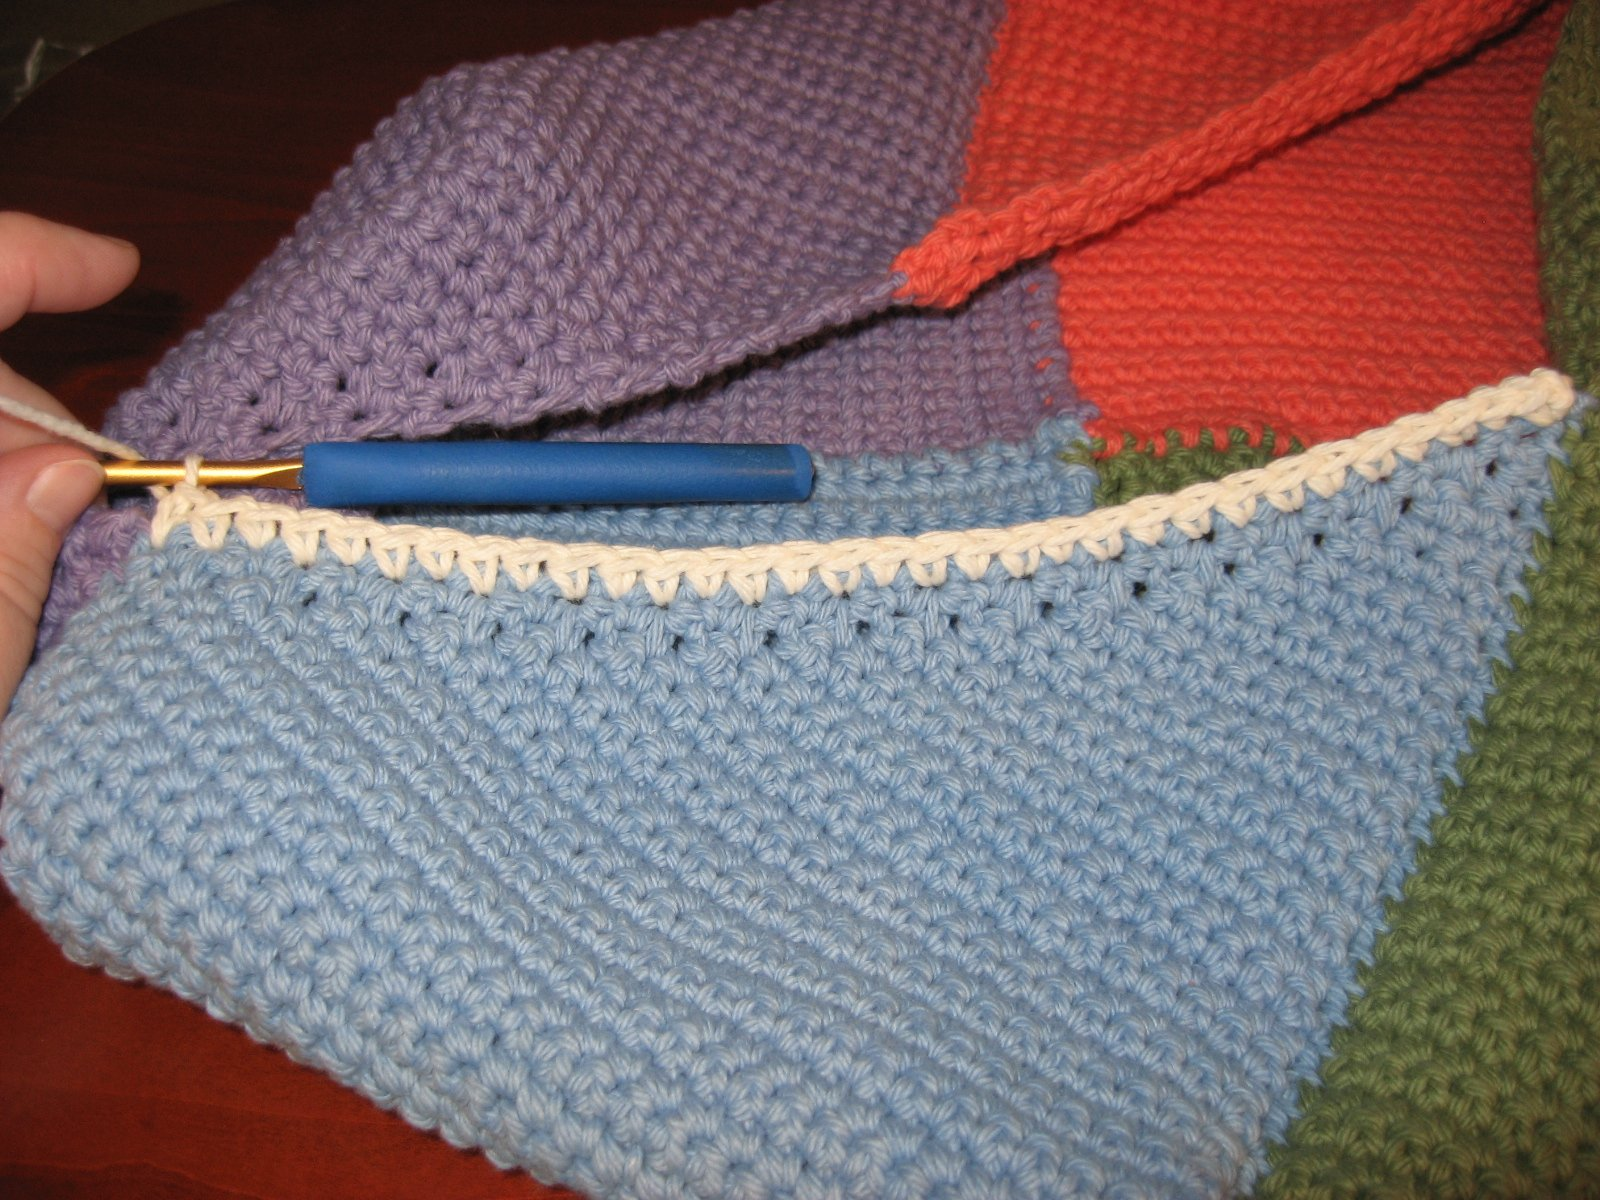 Hooked on Needles: Crocheted Swirling Bag ~ A Picture Tutorial